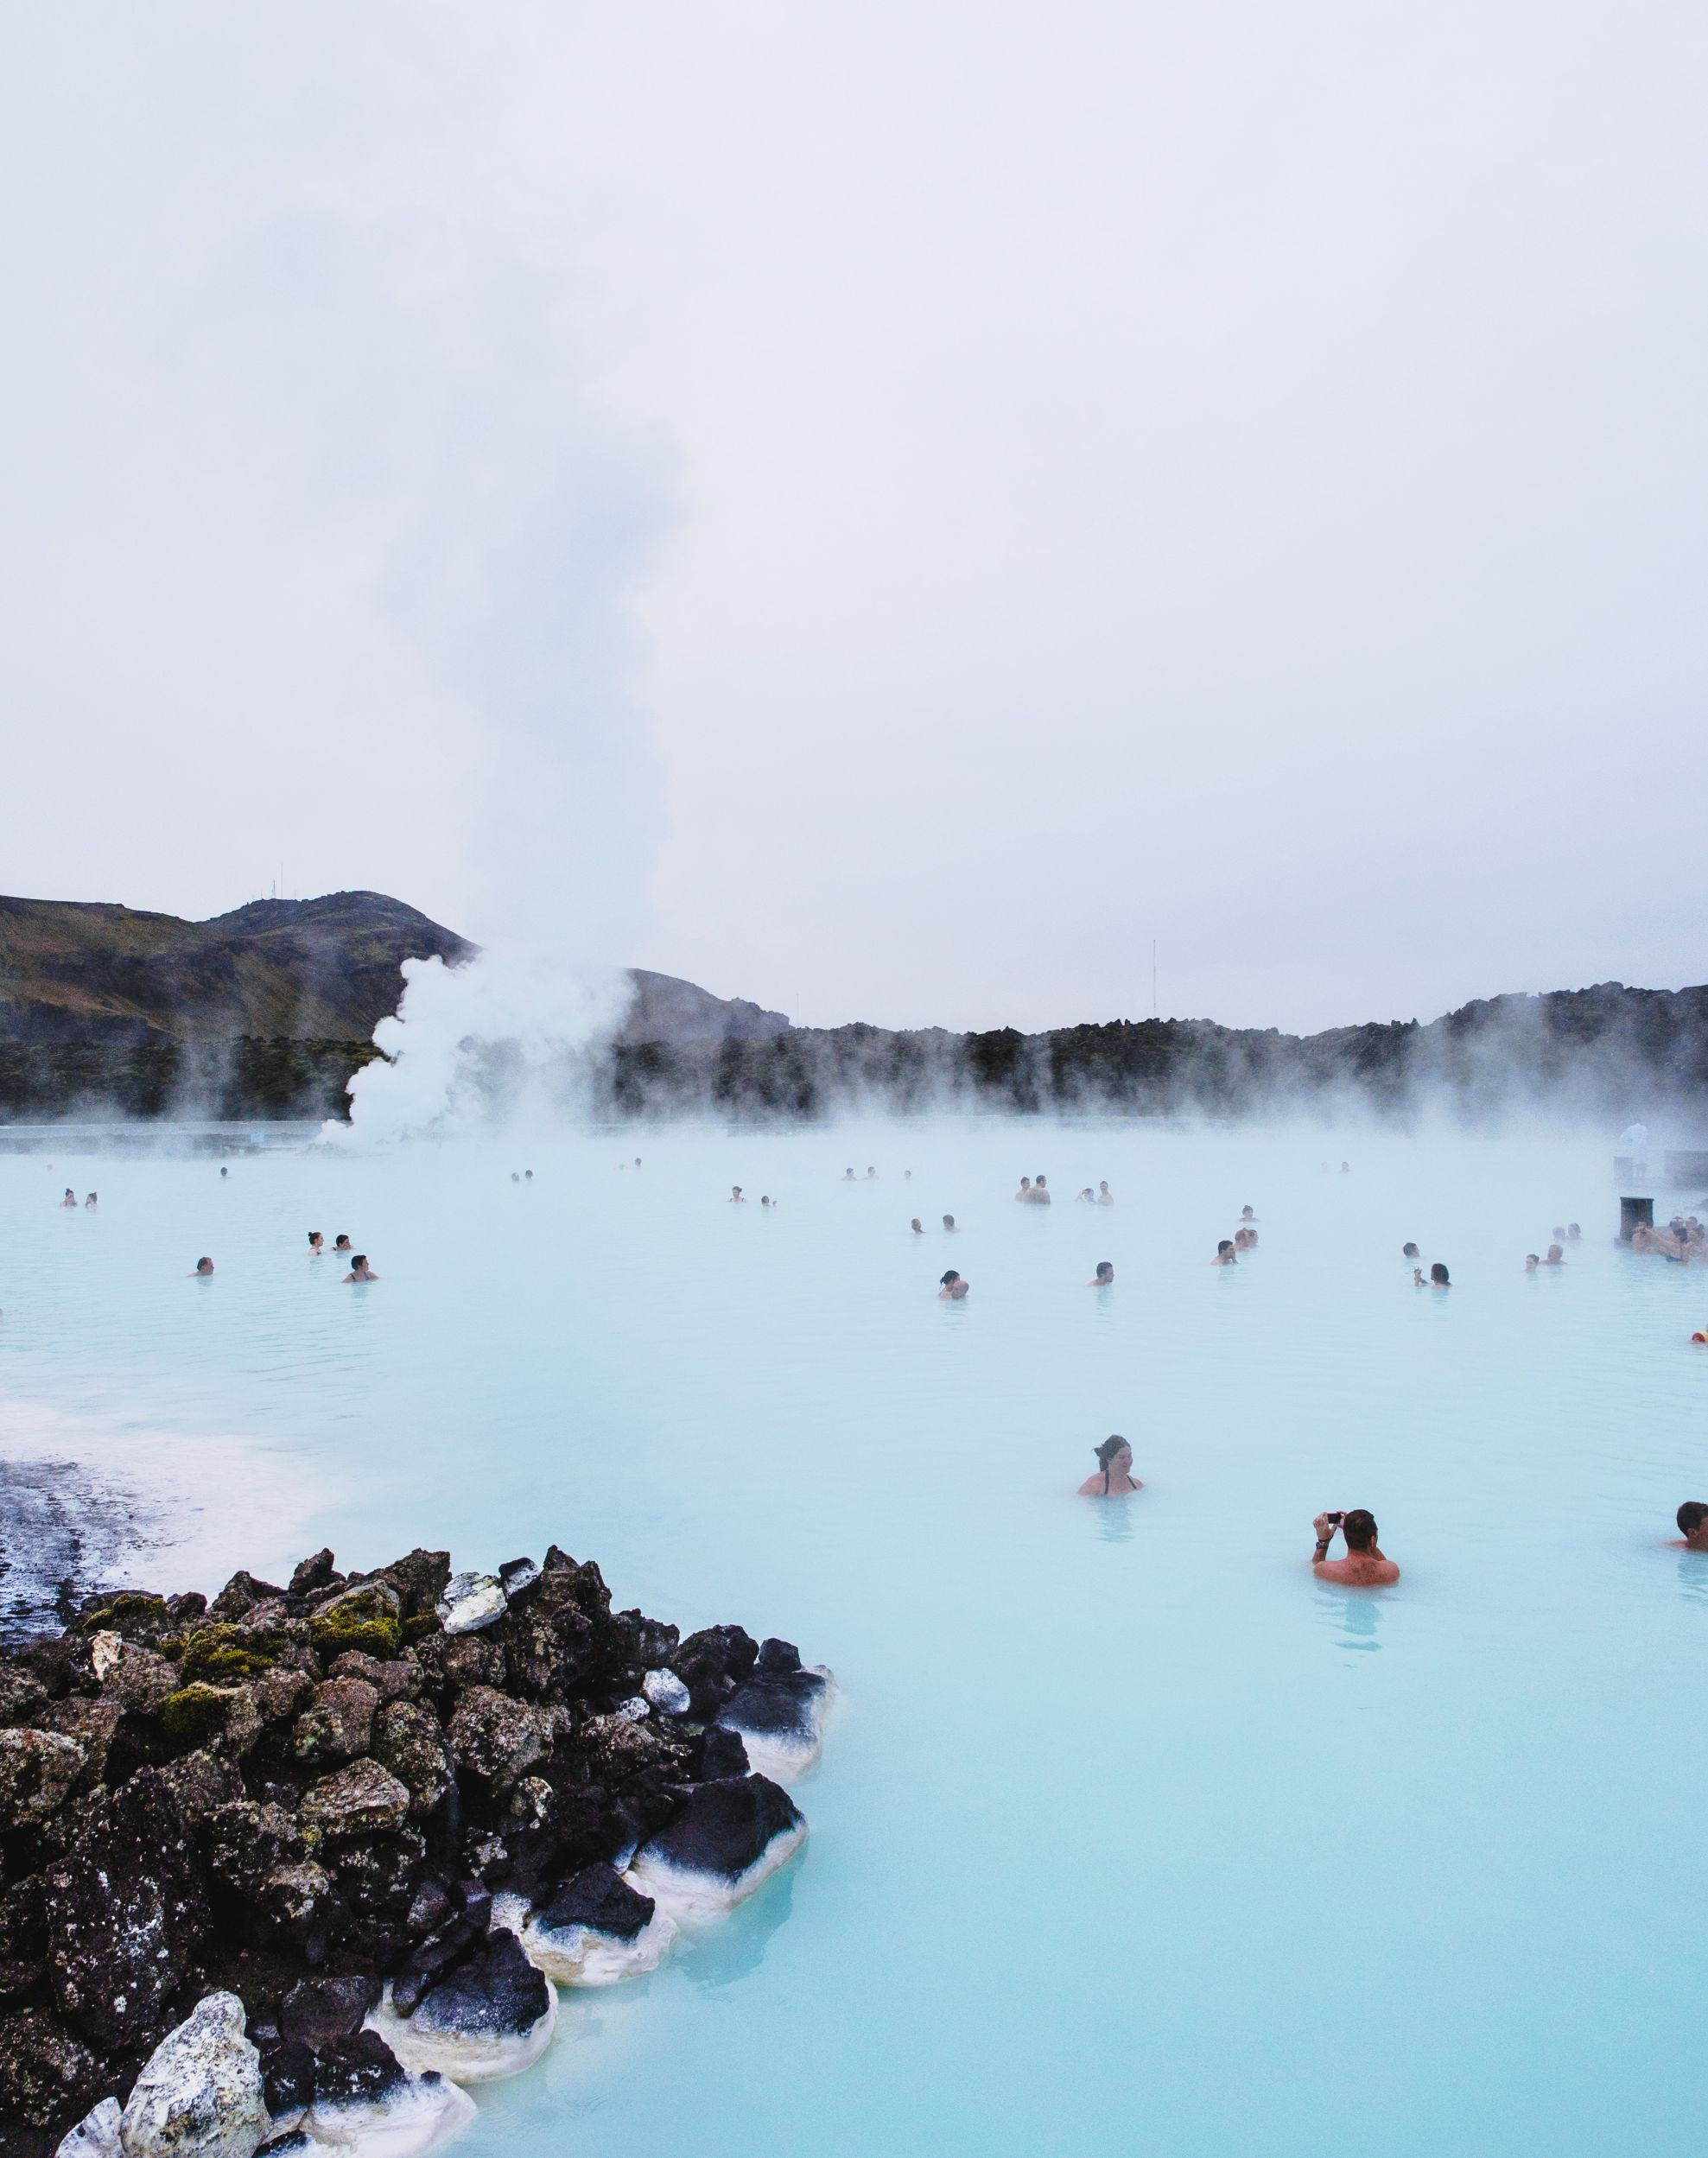 Blue lagoon with lots of people relaxing in it in the winter time in Iceland - stop in 24 hour Iceland itinerary